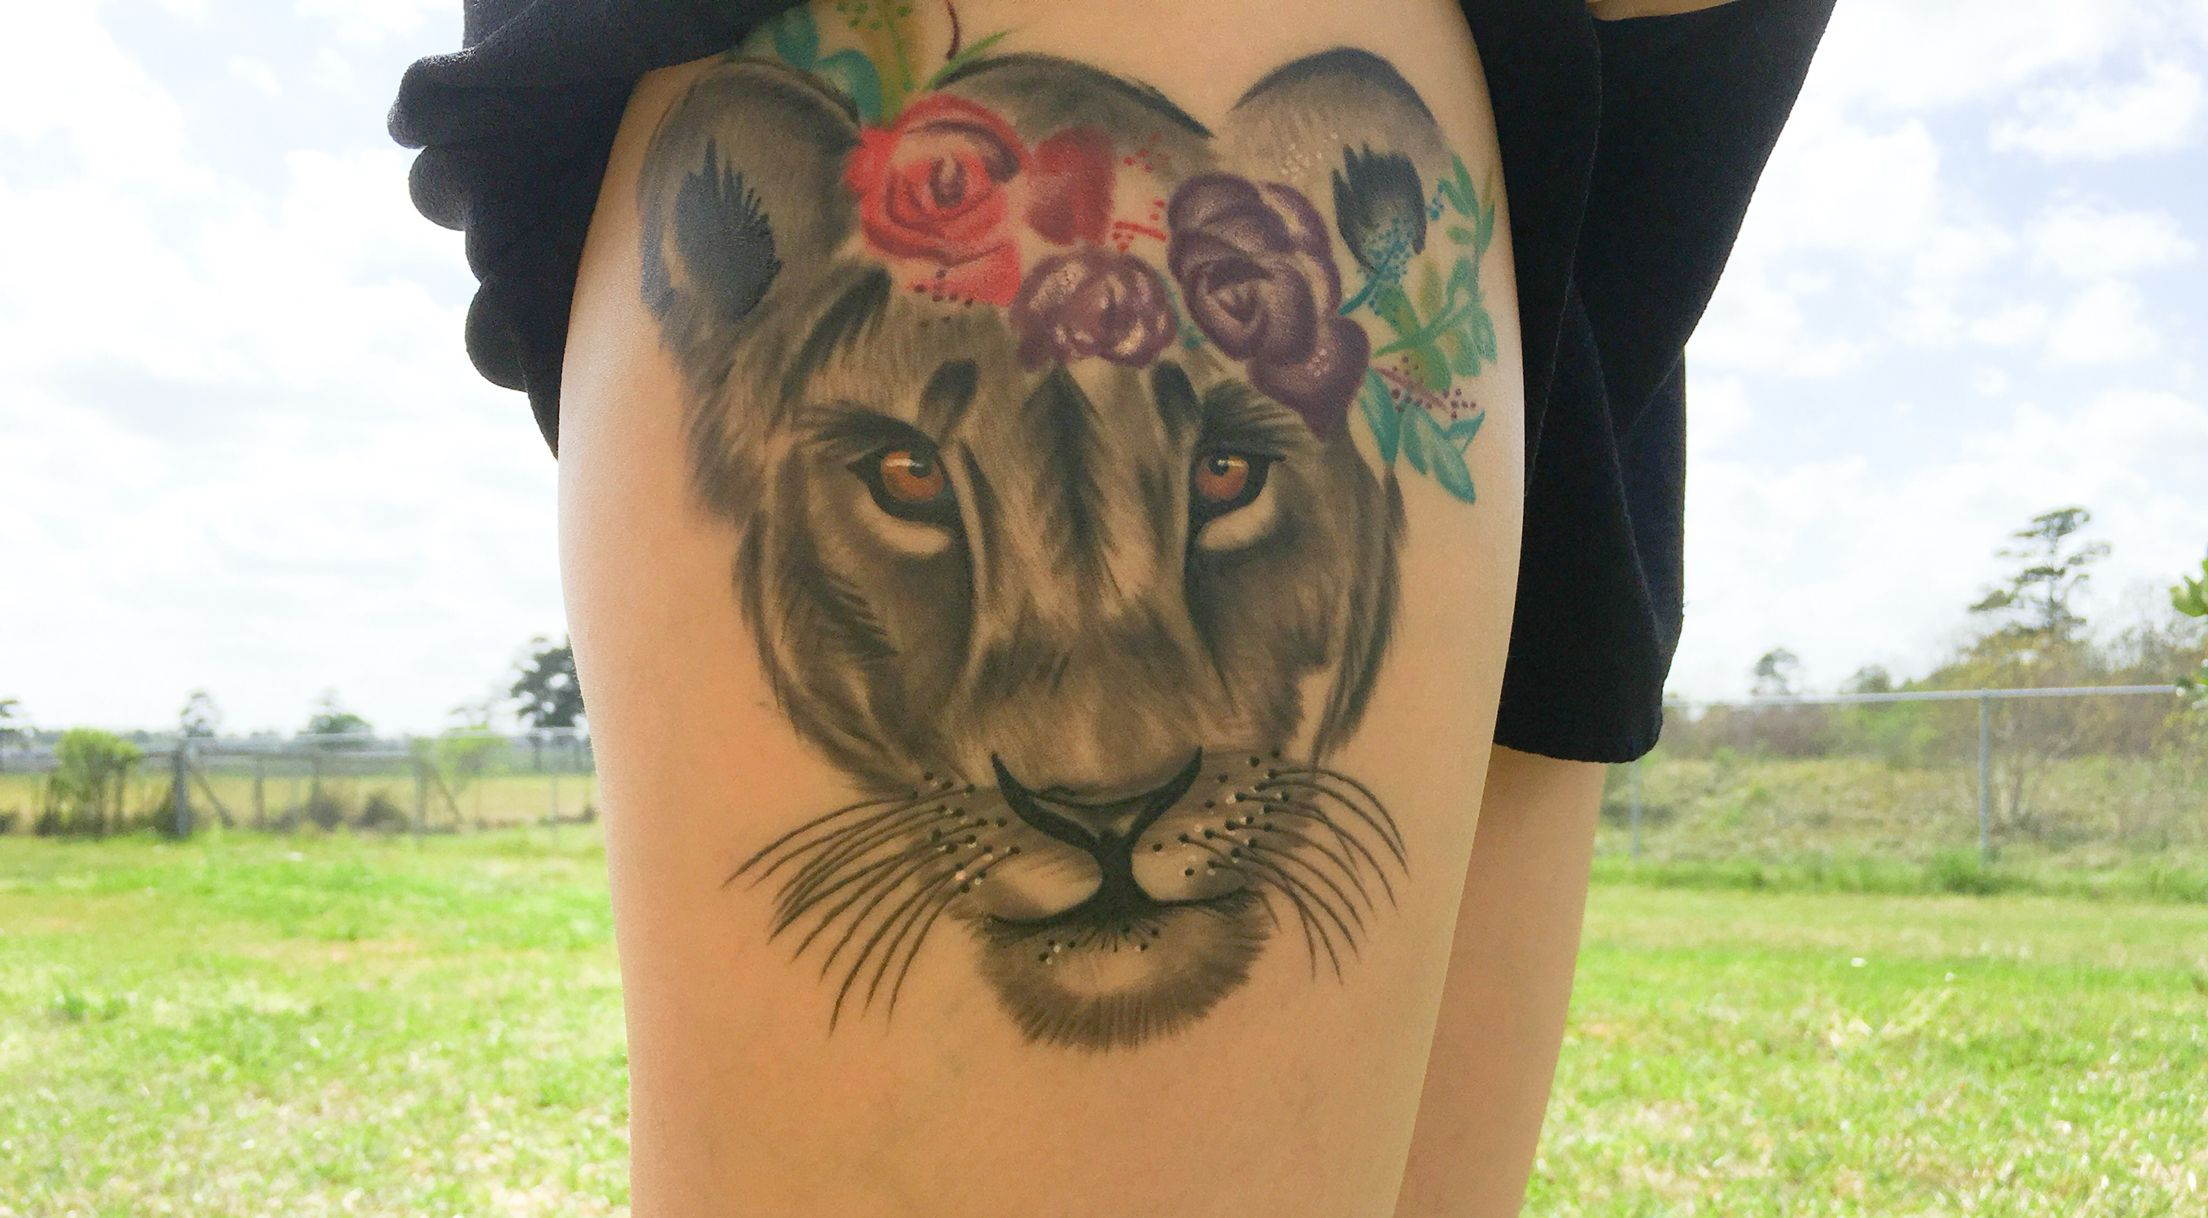 Lioness Tattoo Water Color Crown Artbymegs Lionesstattoo Lion Tattoo Girlytattoo Feminine Tattoo Queen Tattoo Lioness Tattoo Jewelry Tattoo Tattoos